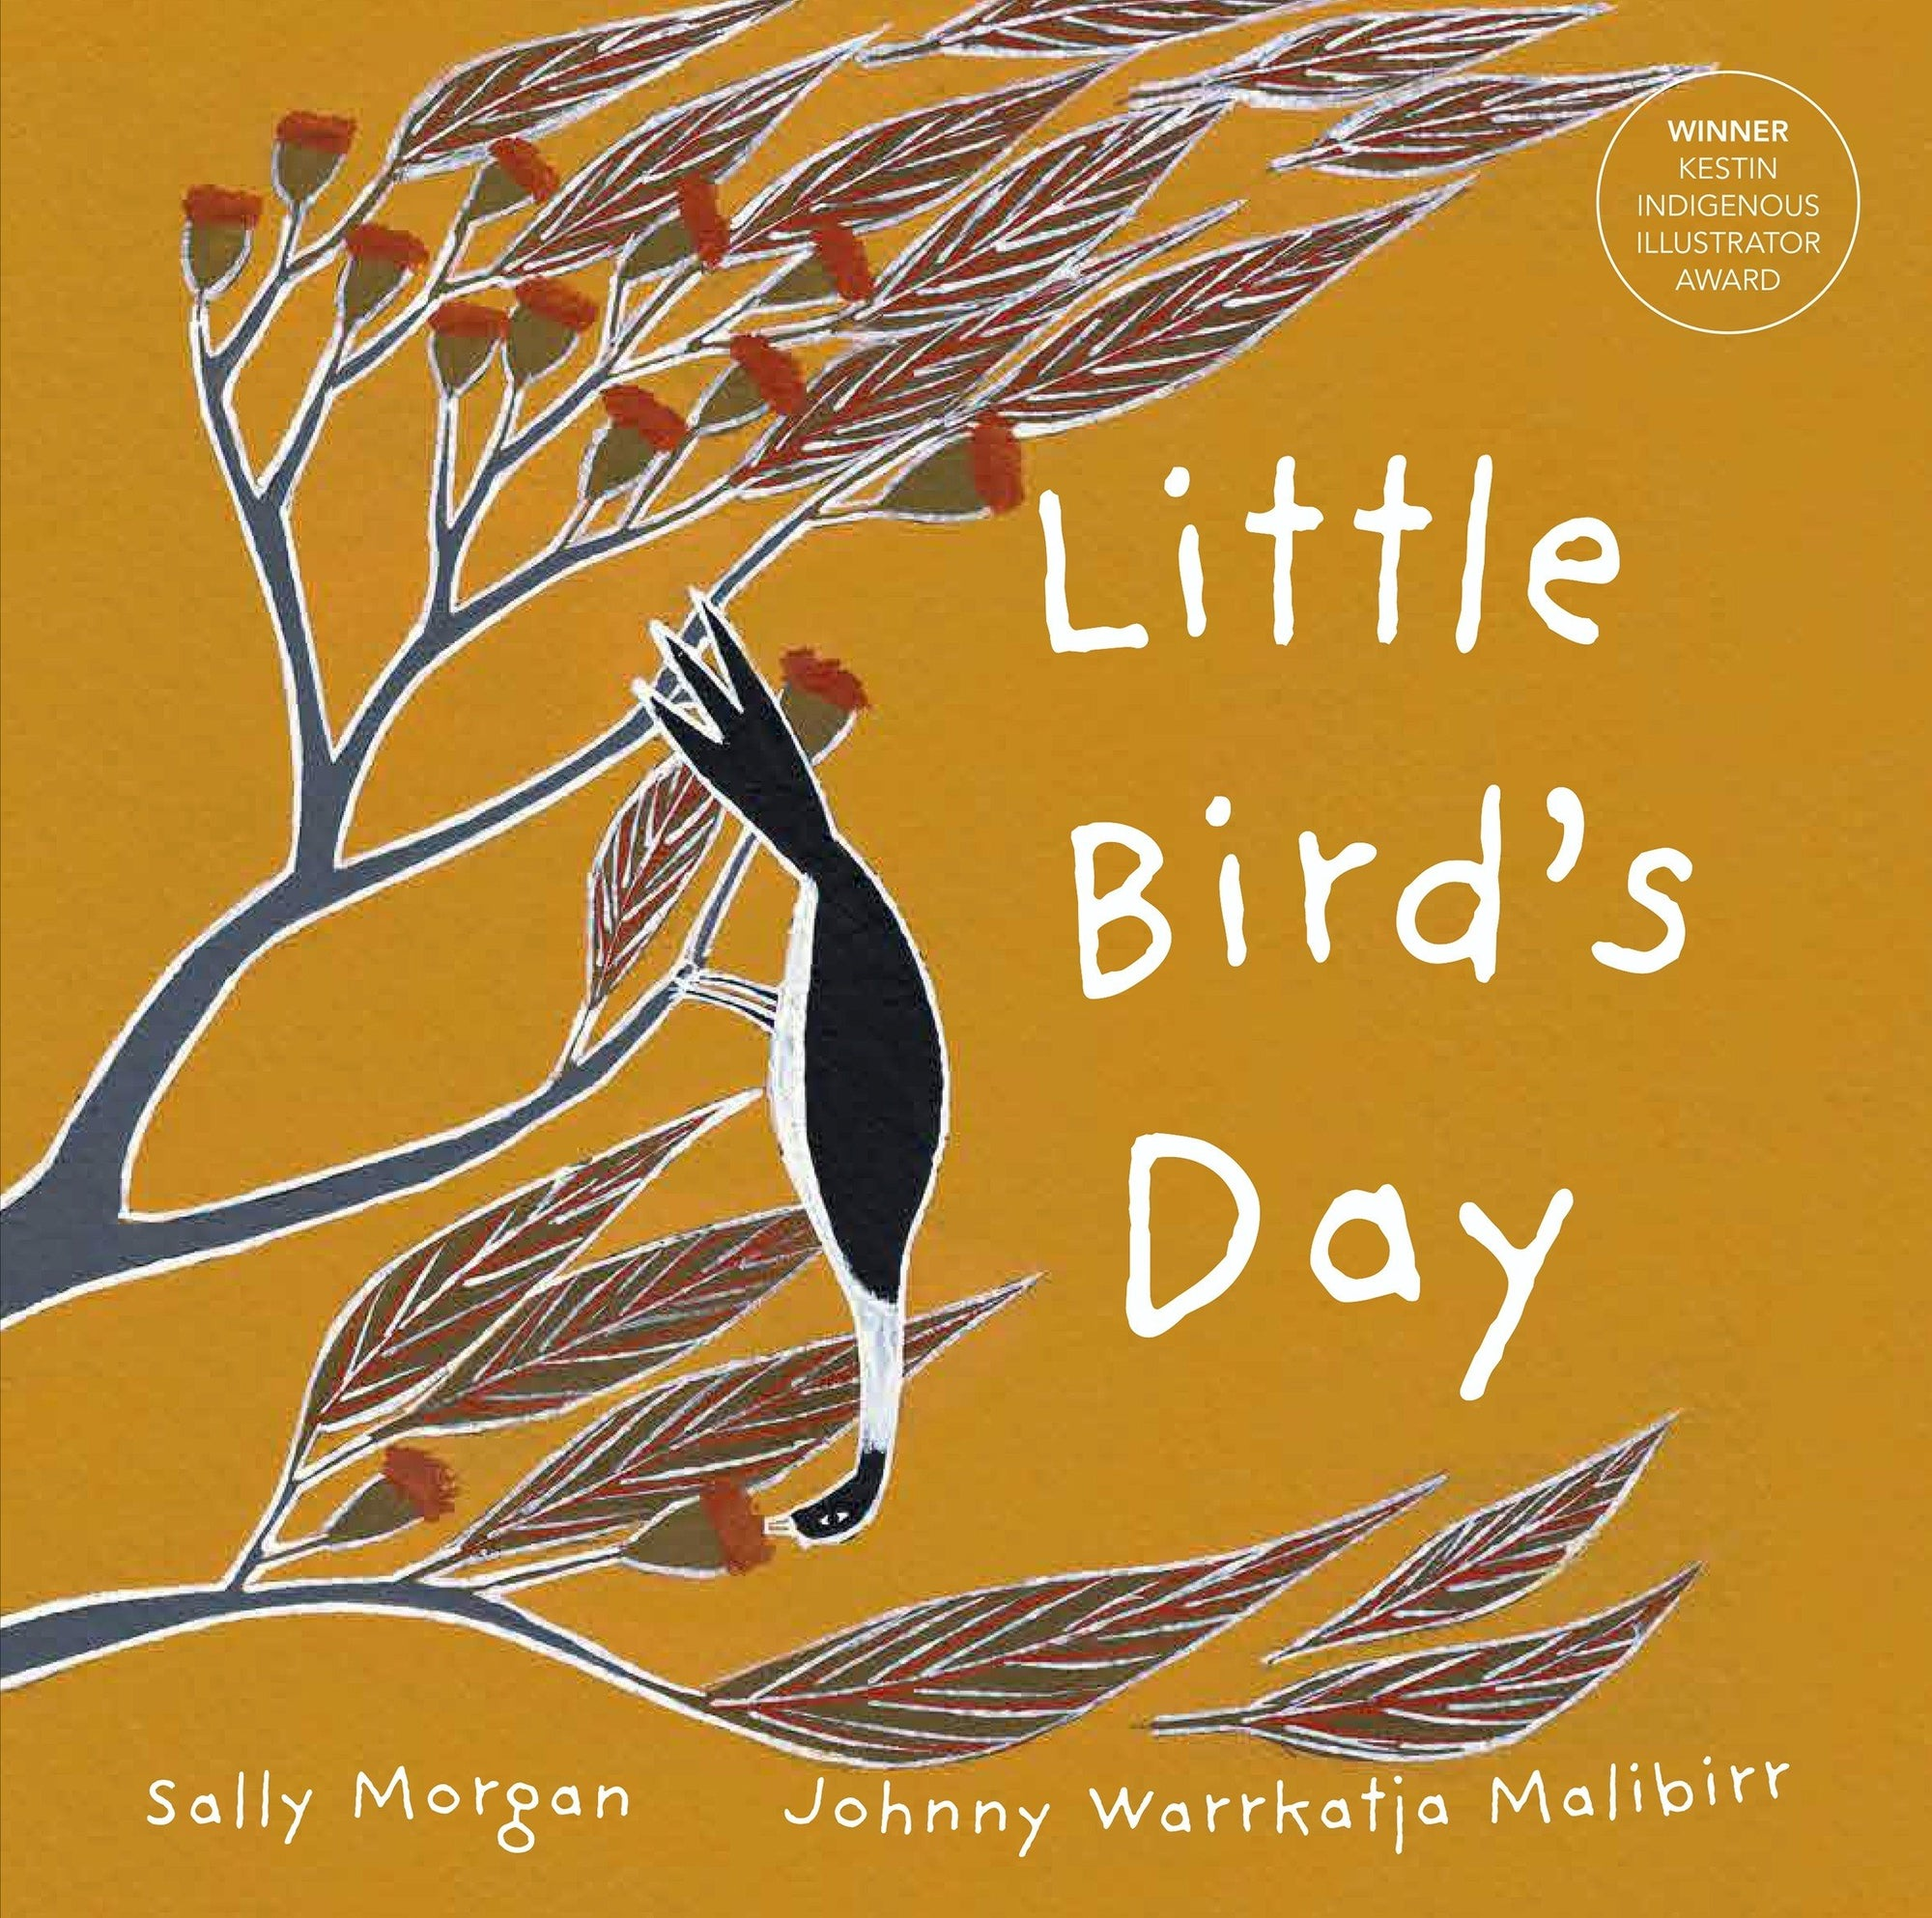 Little Bird's Day by Sally Morgan